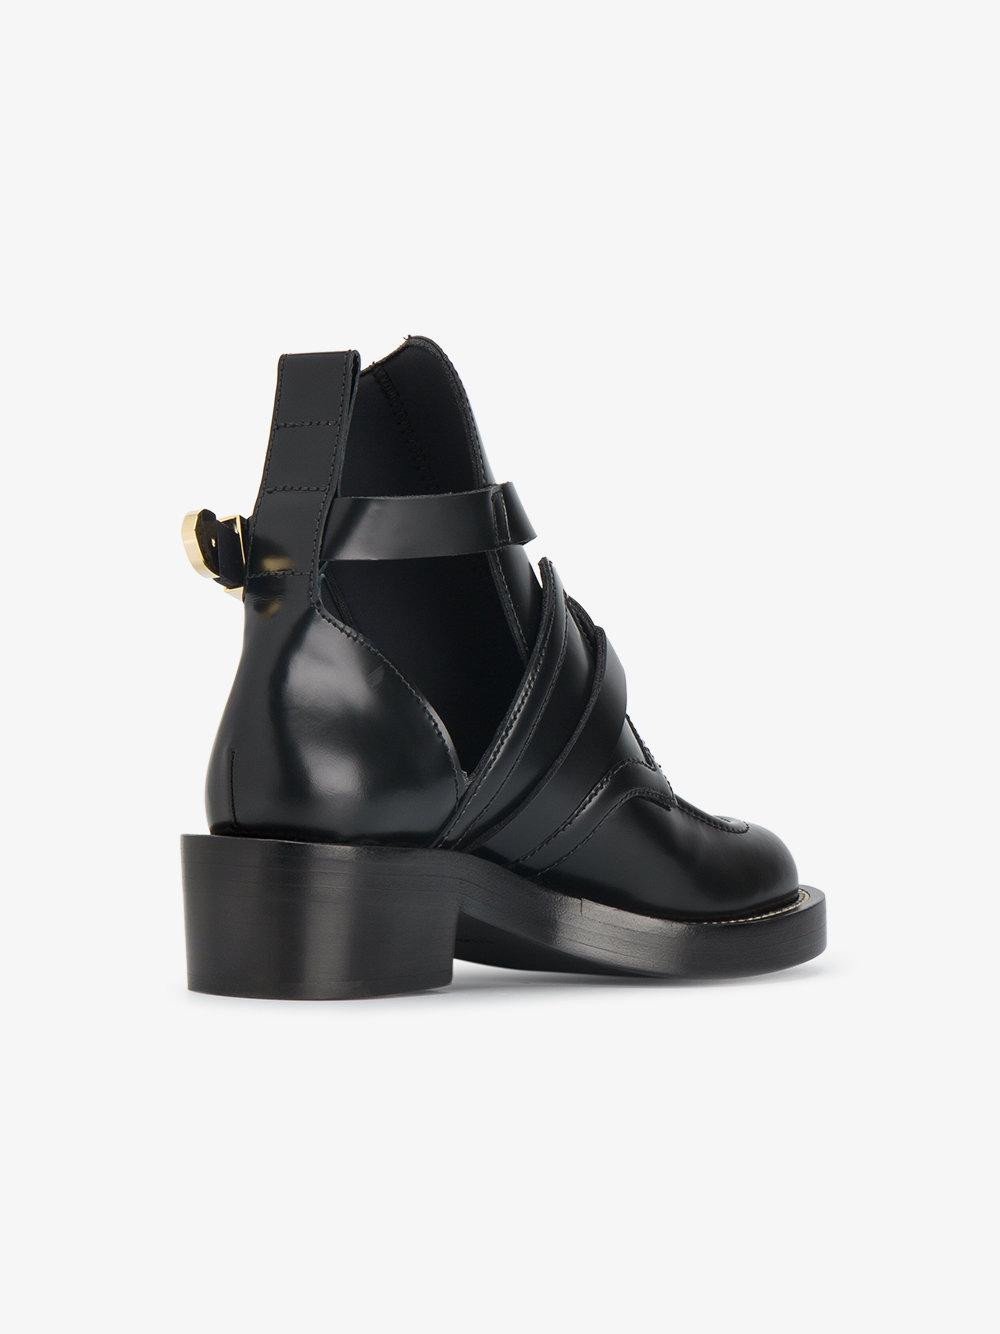 Balenciaga Leather Ceinture Cut Out Booties in Black